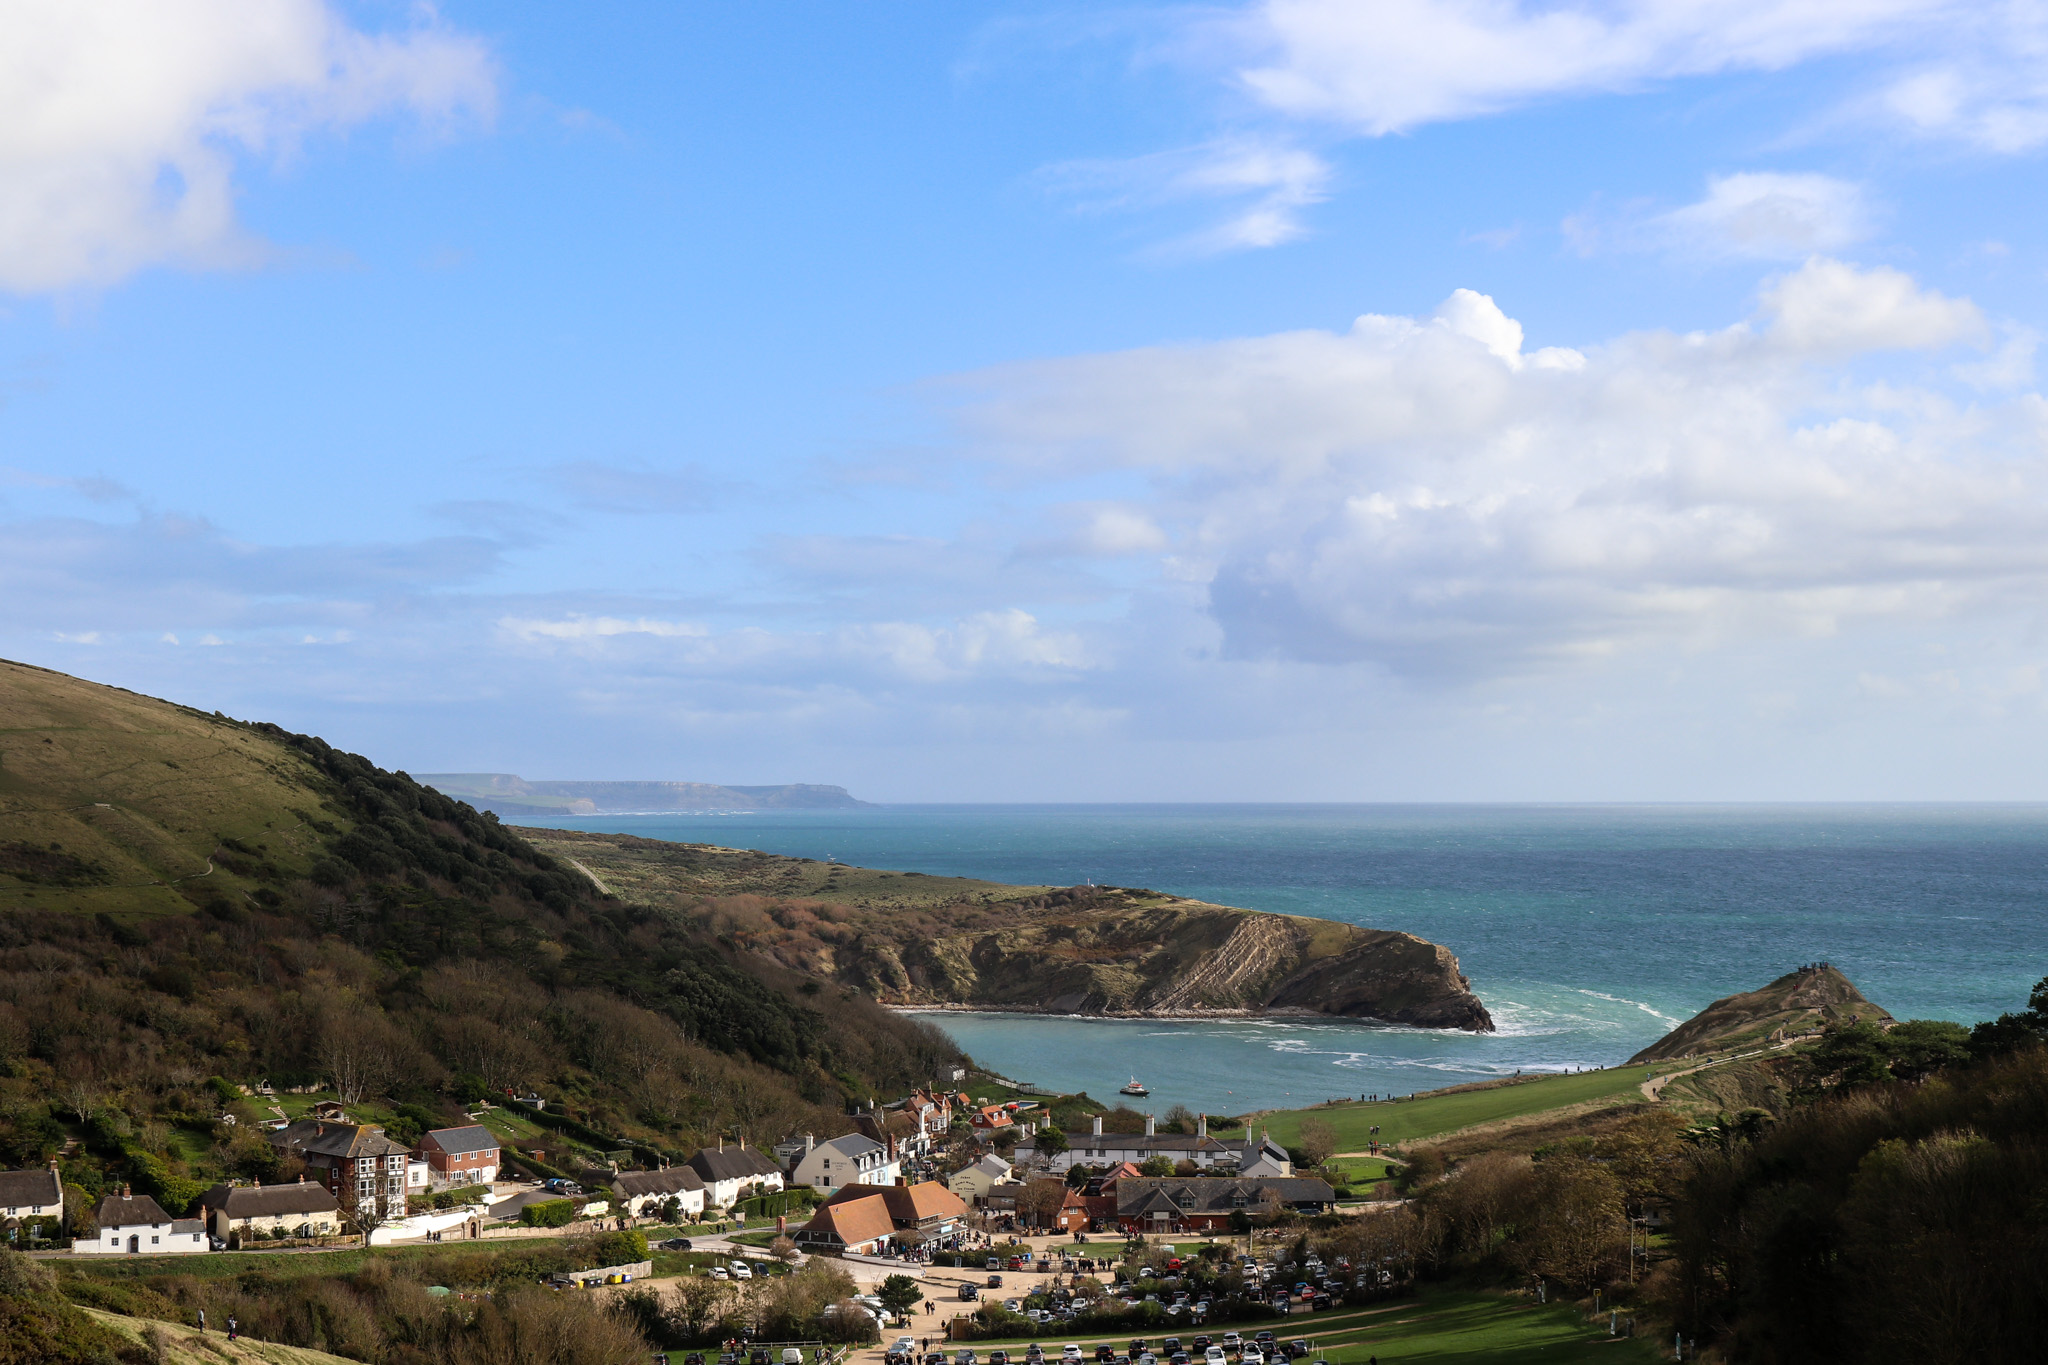 Lulworth Cove bay and village viewed from the path to Durdle Door